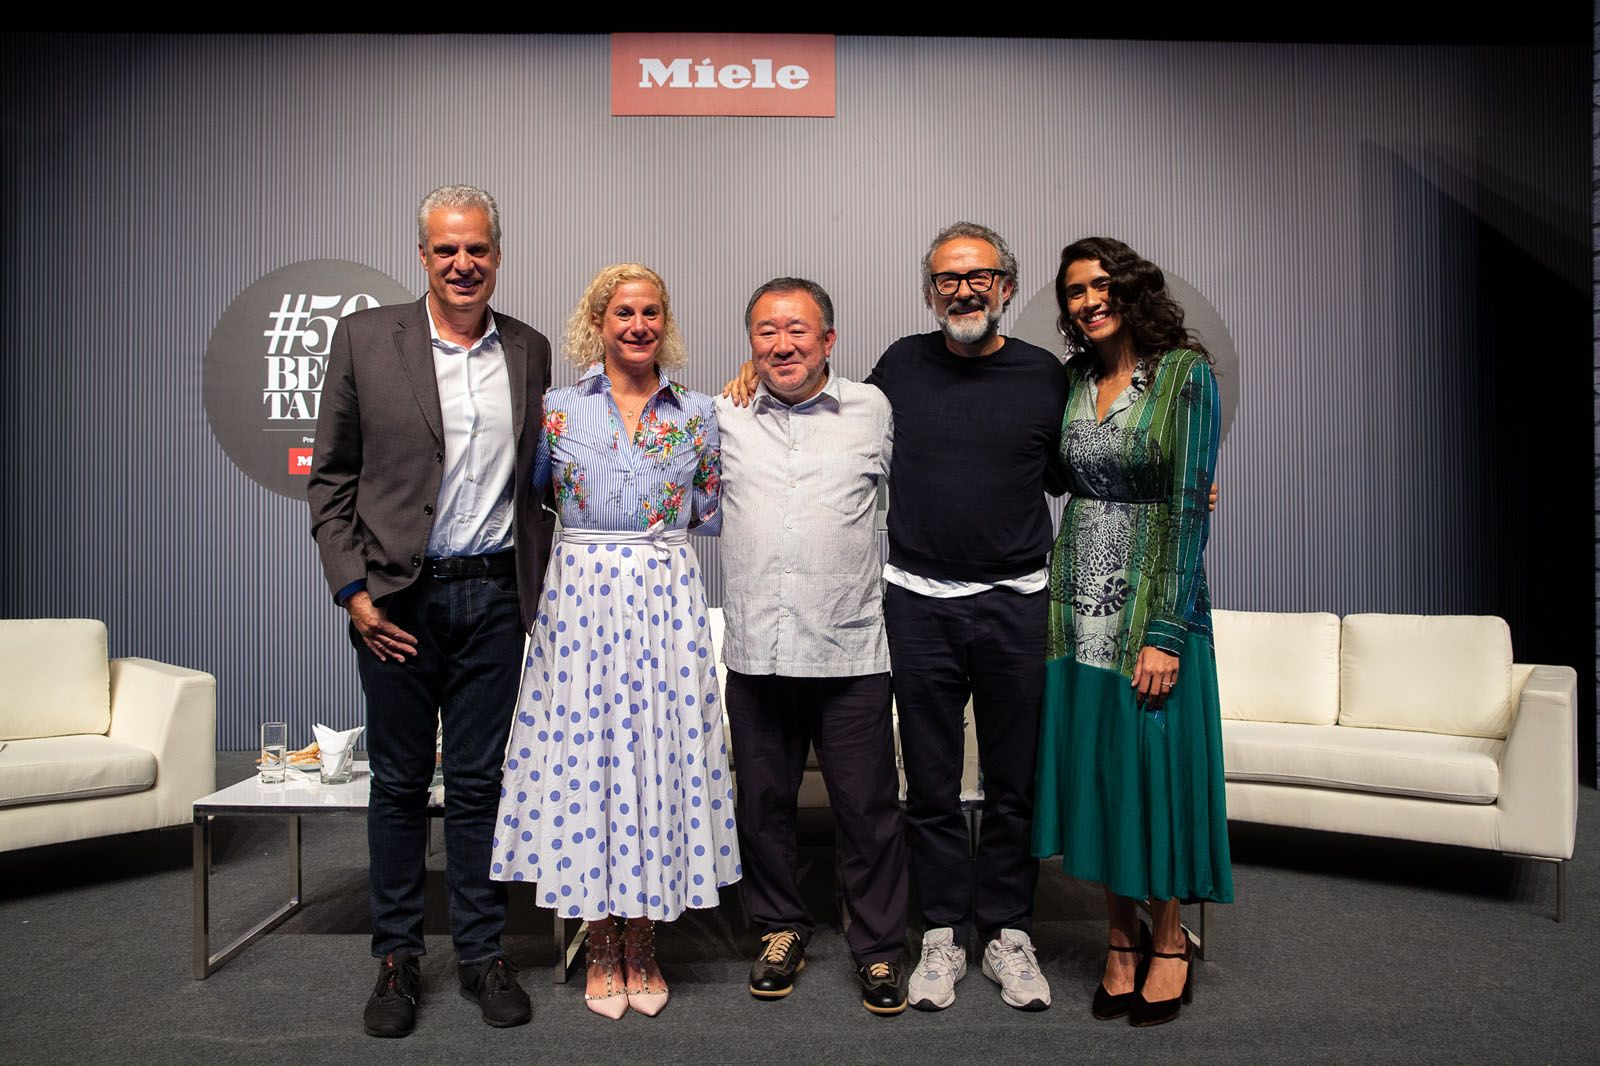 How To Attract The Right Kitchen Karma, According To The World's Best Chefs